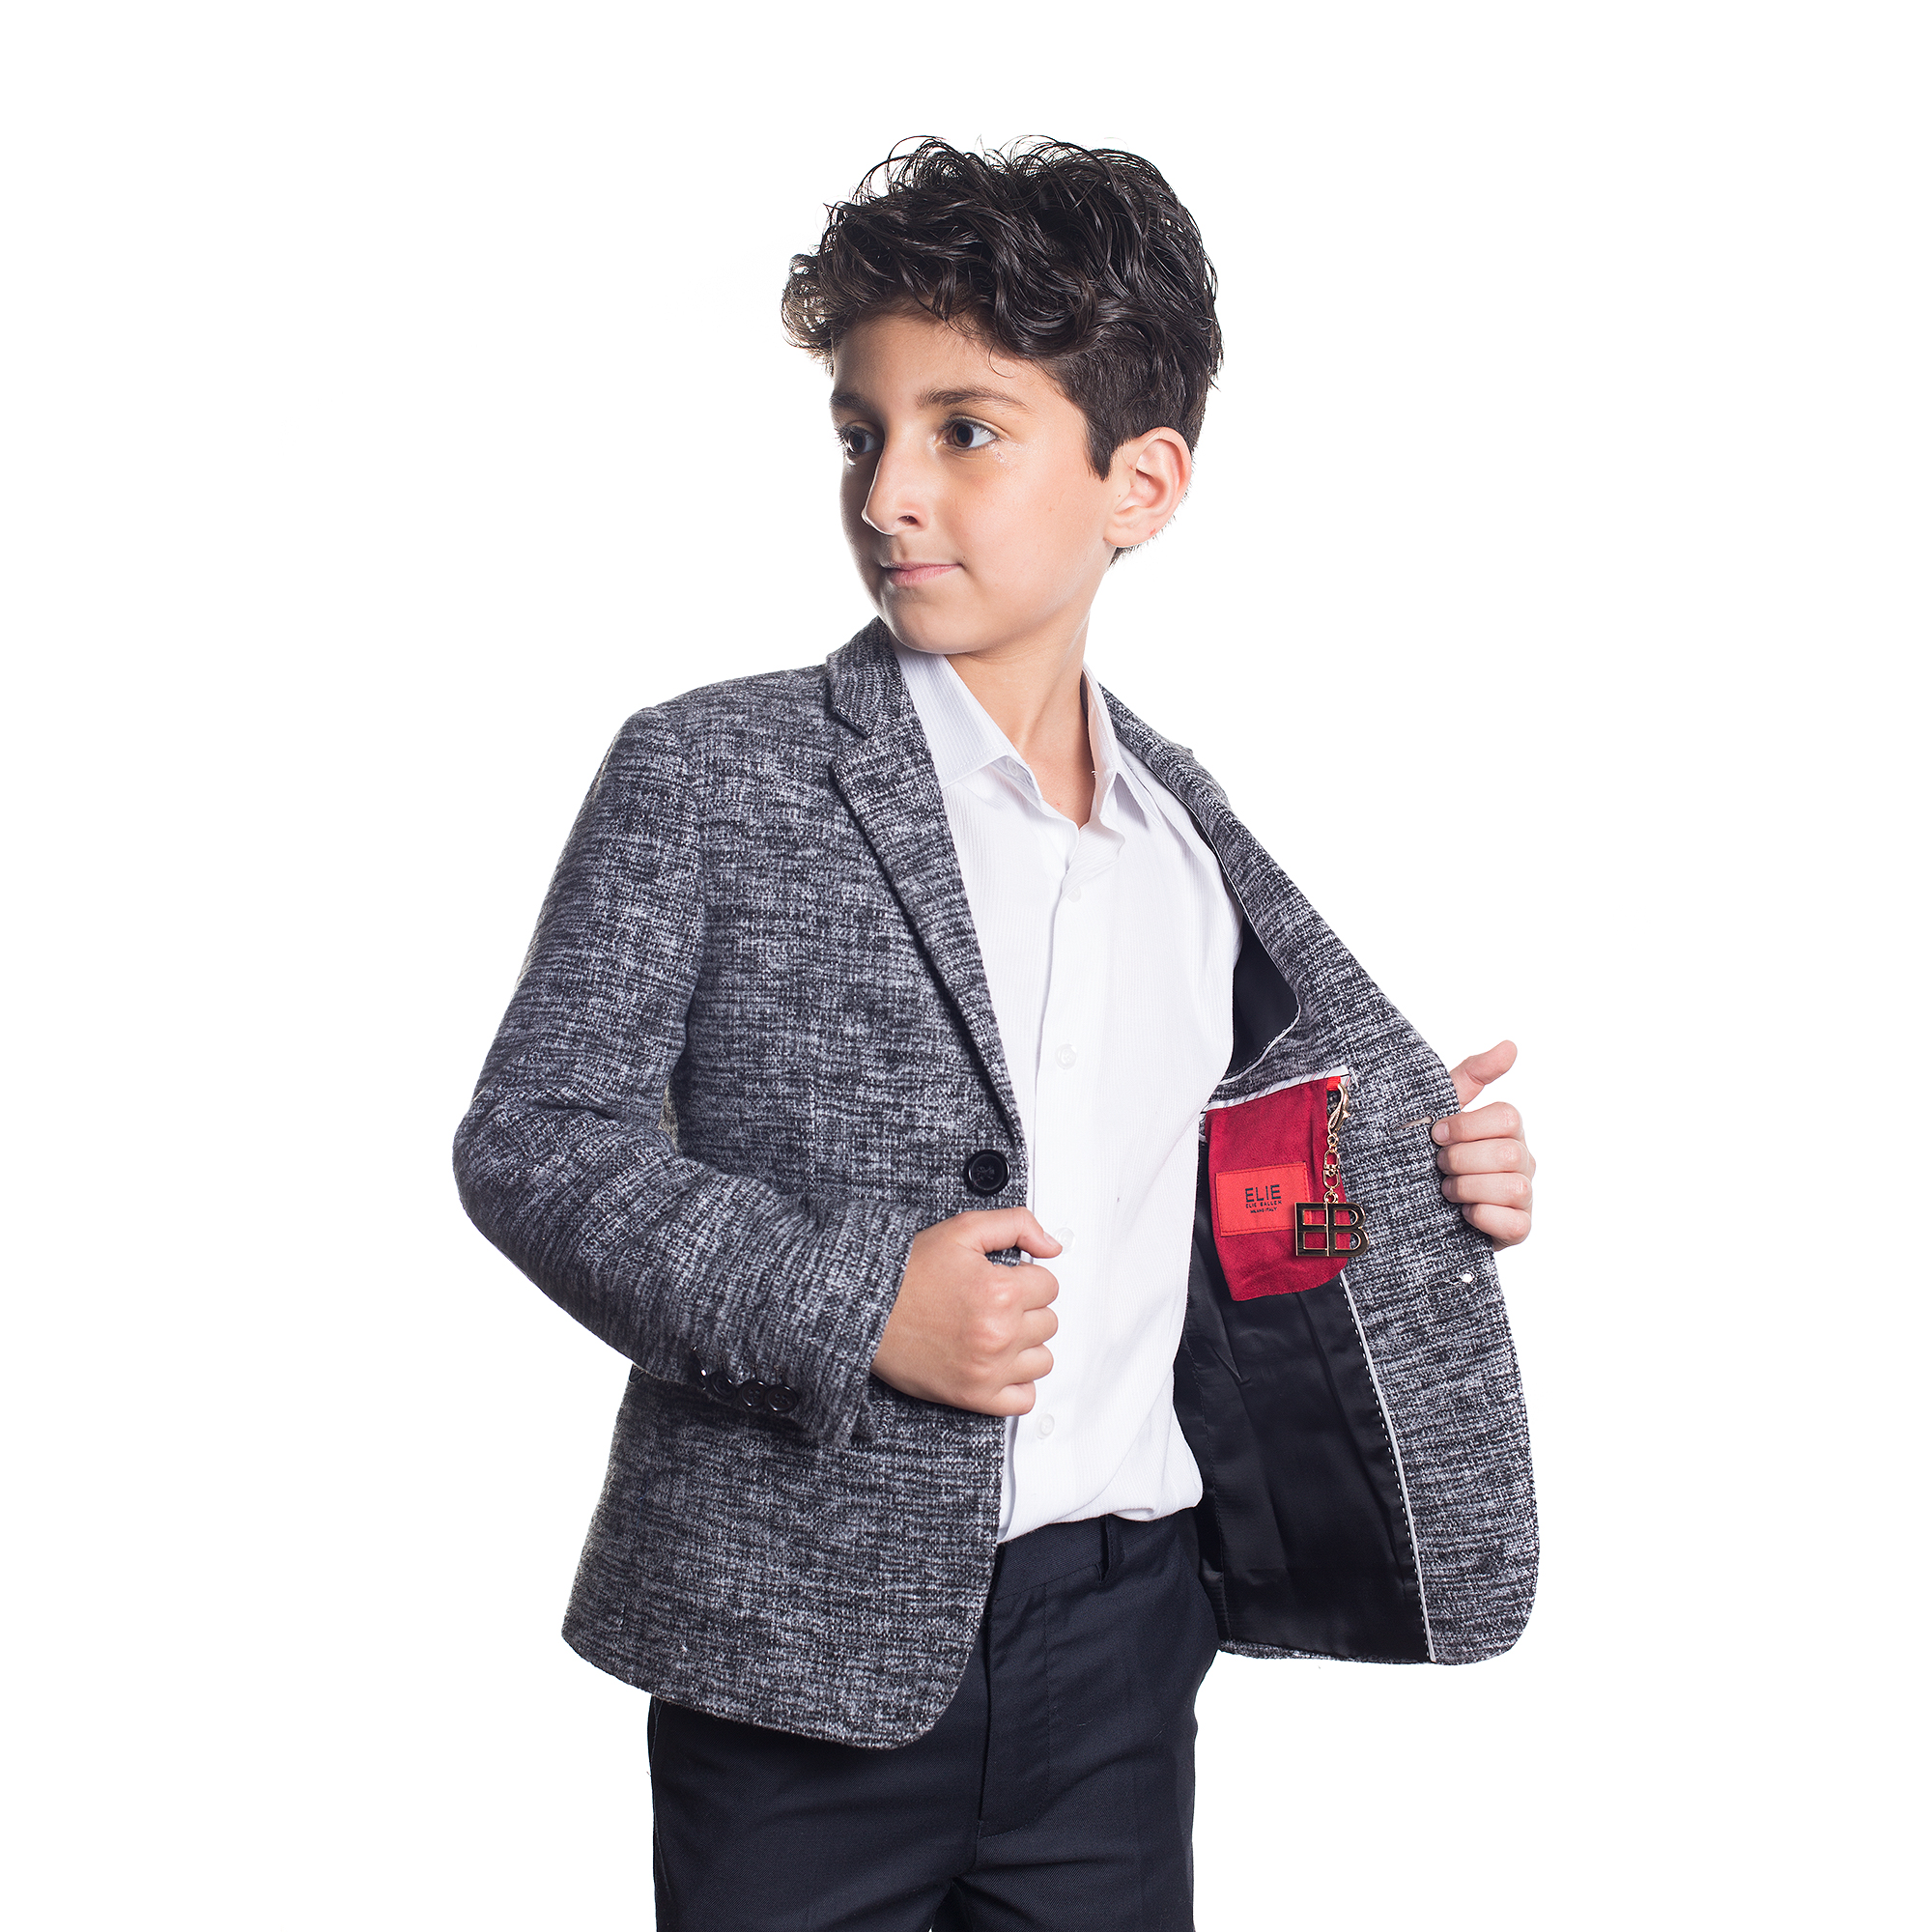 Mélange Wool Boys Blazers / Sports Coat Jacket EBBW1554